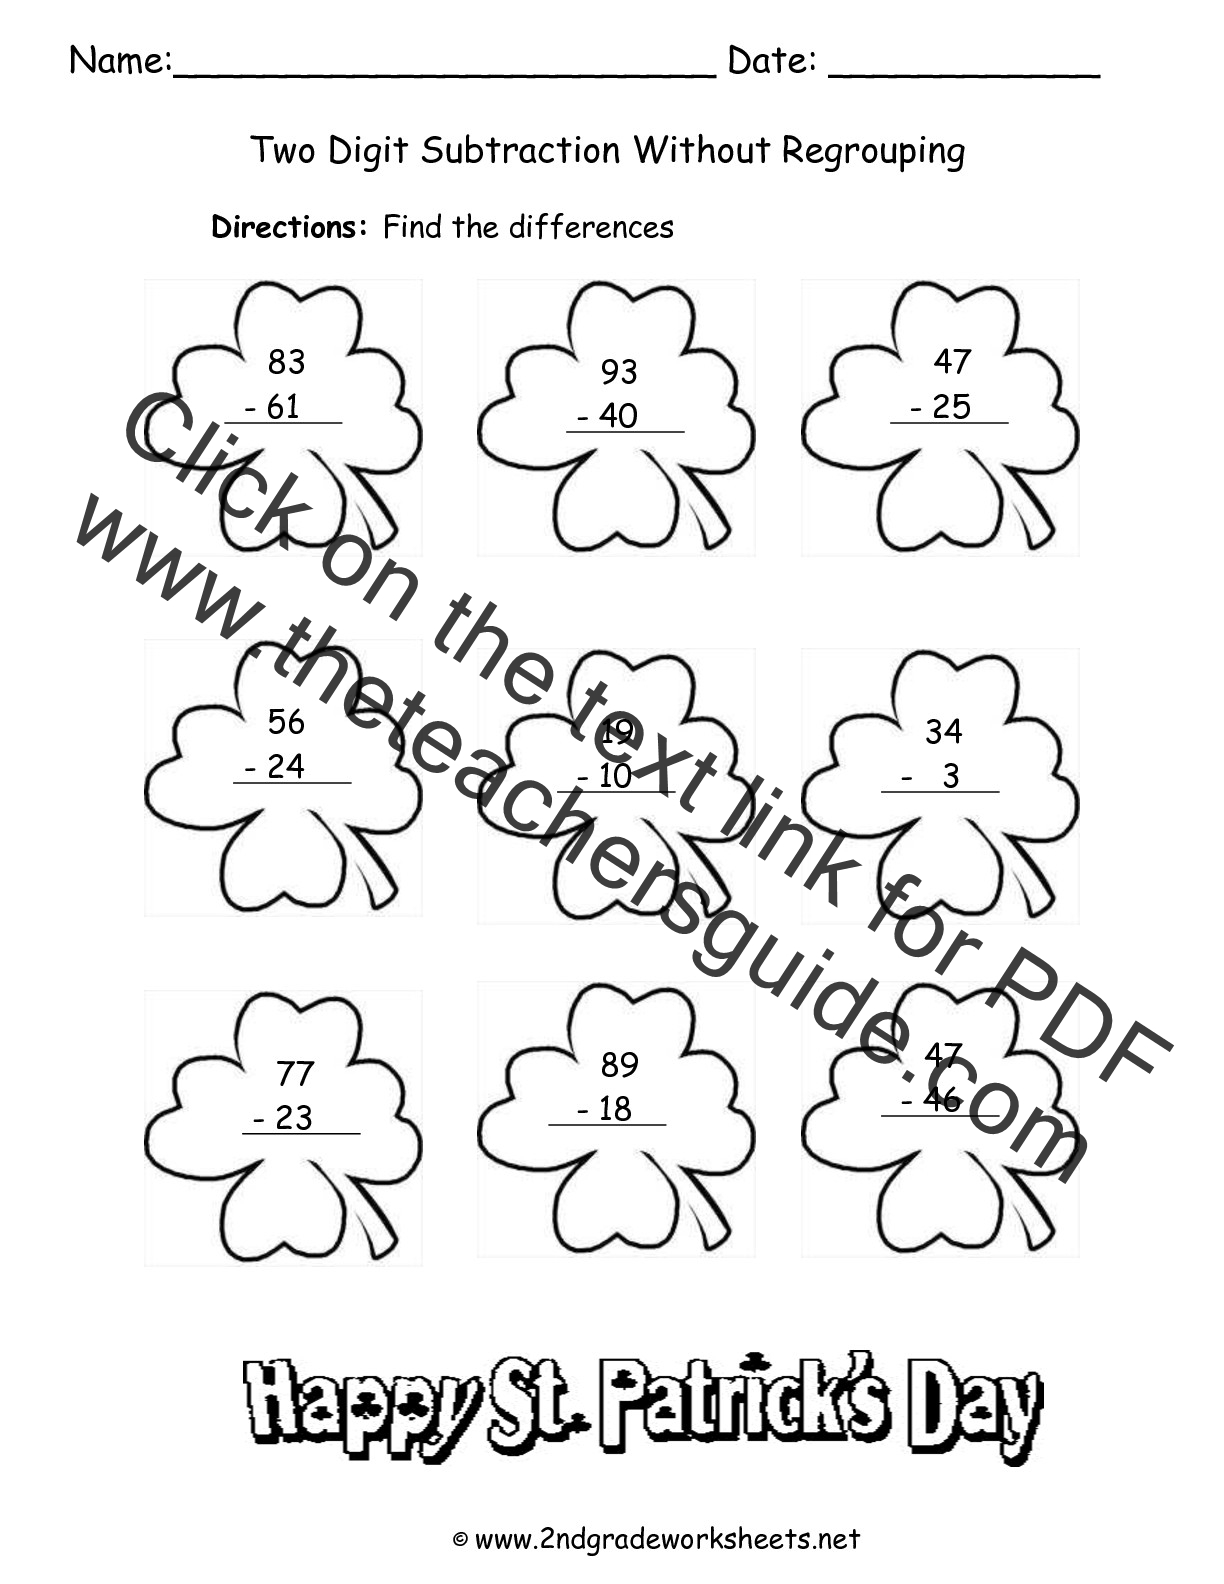 Subtraction With Regrouping Worksheets For Grade 1 mixed fraction – Math Subtraction Worksheets with Regrouping